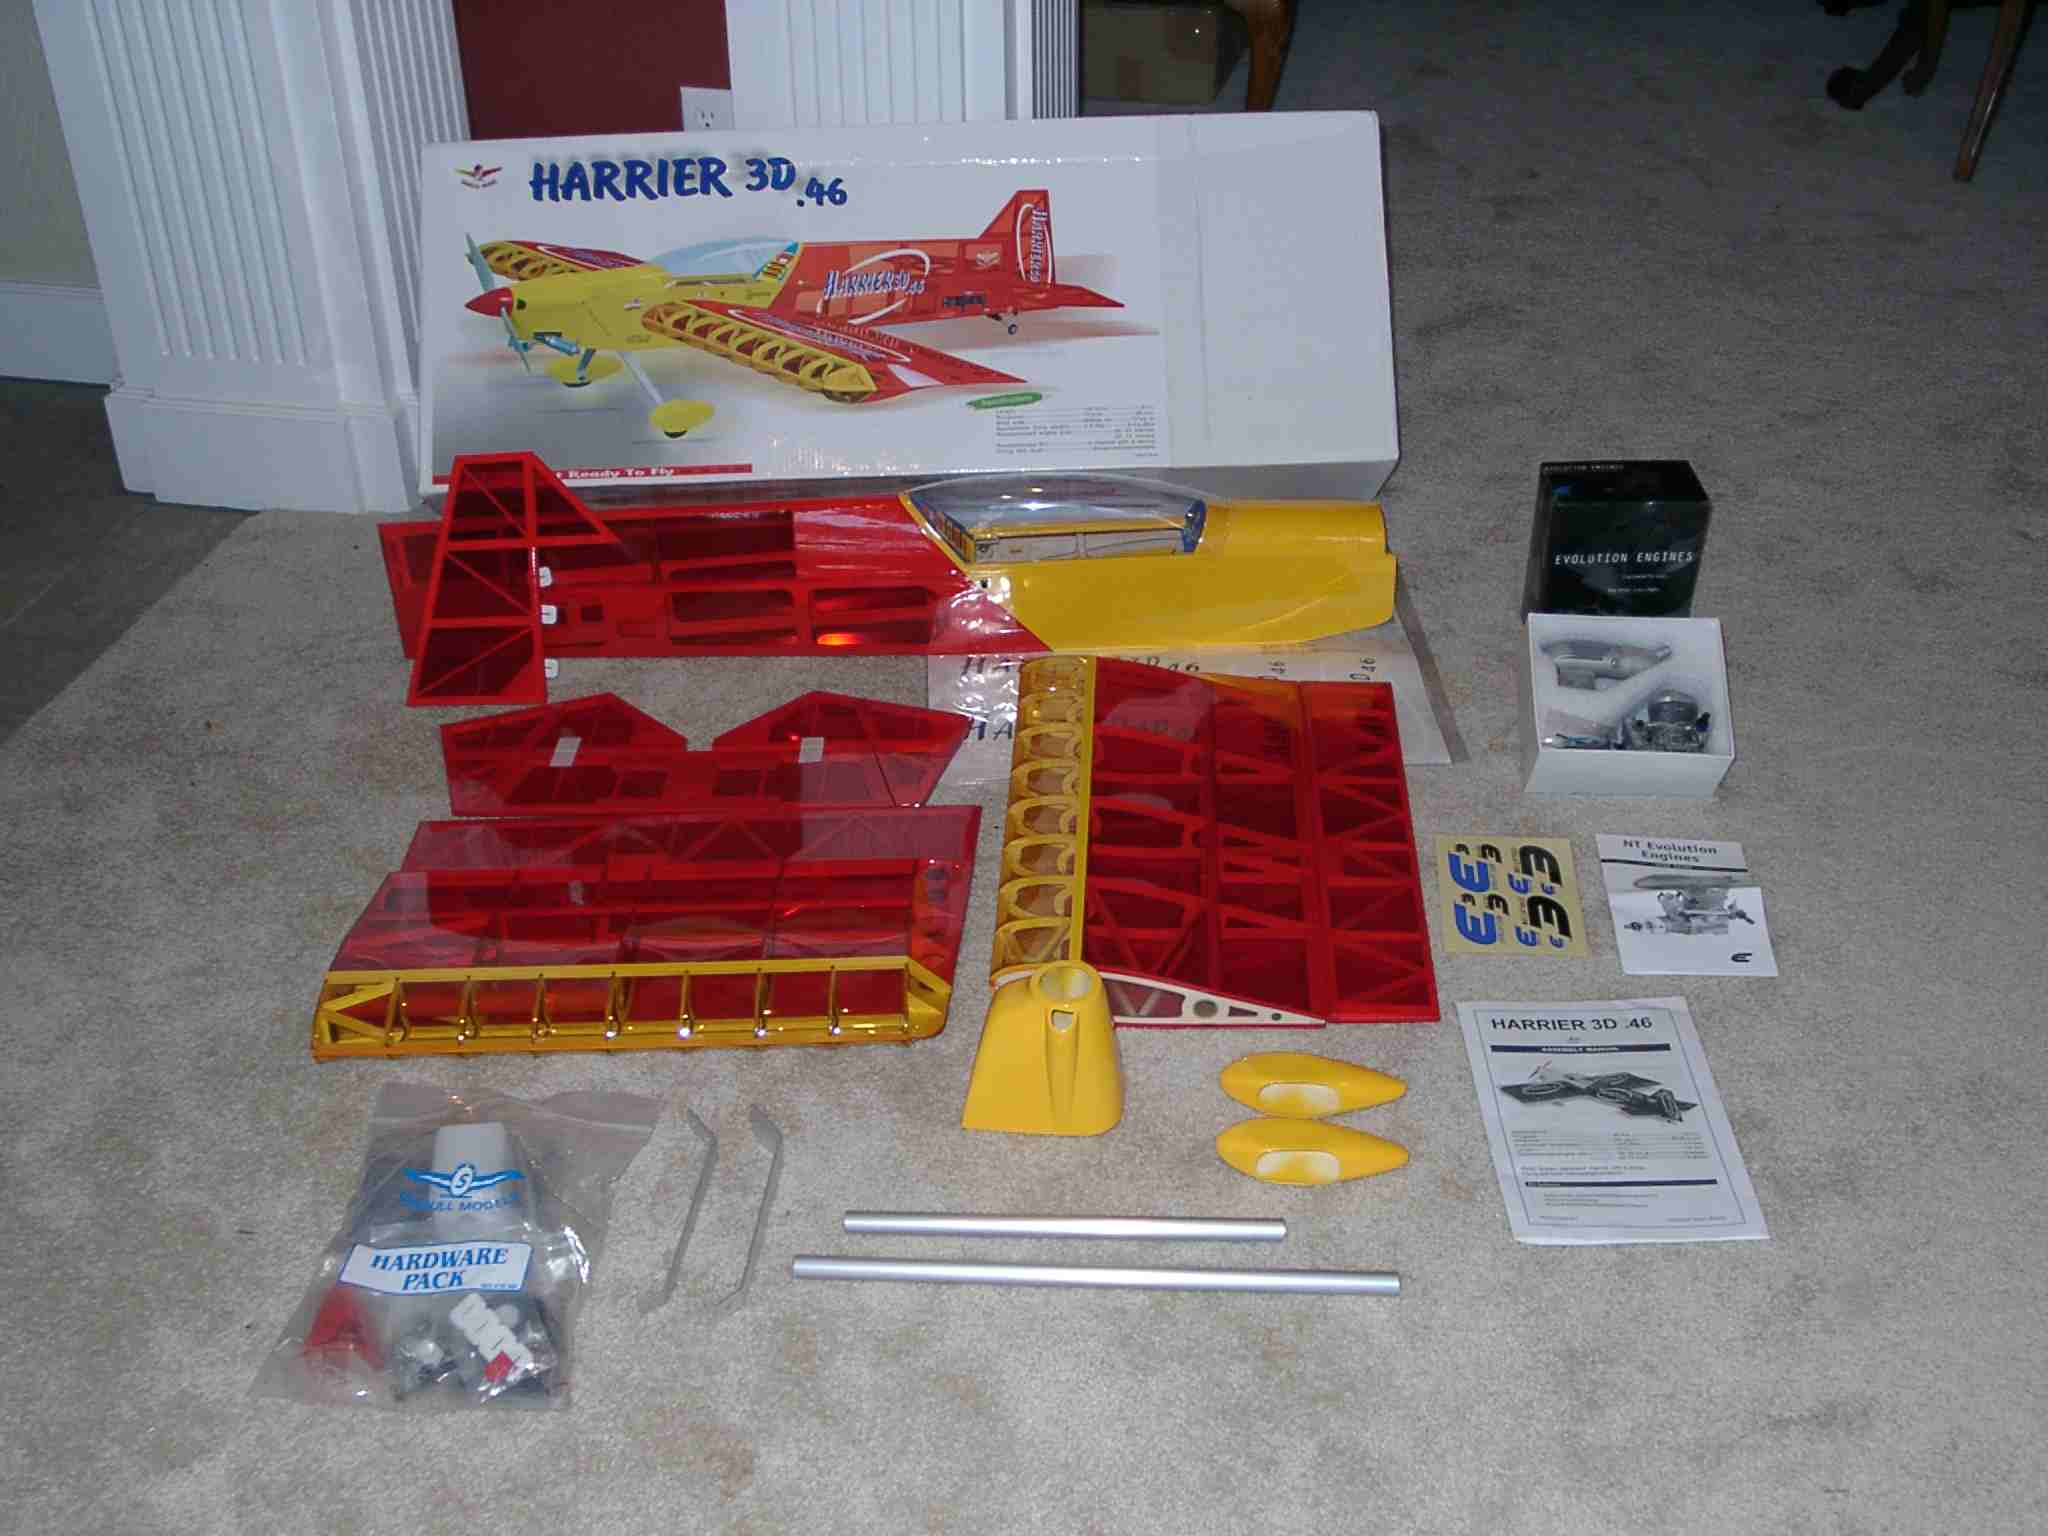 The complete Seagull Harrier 46 kit contents, plus an Evolution .46 Engine.